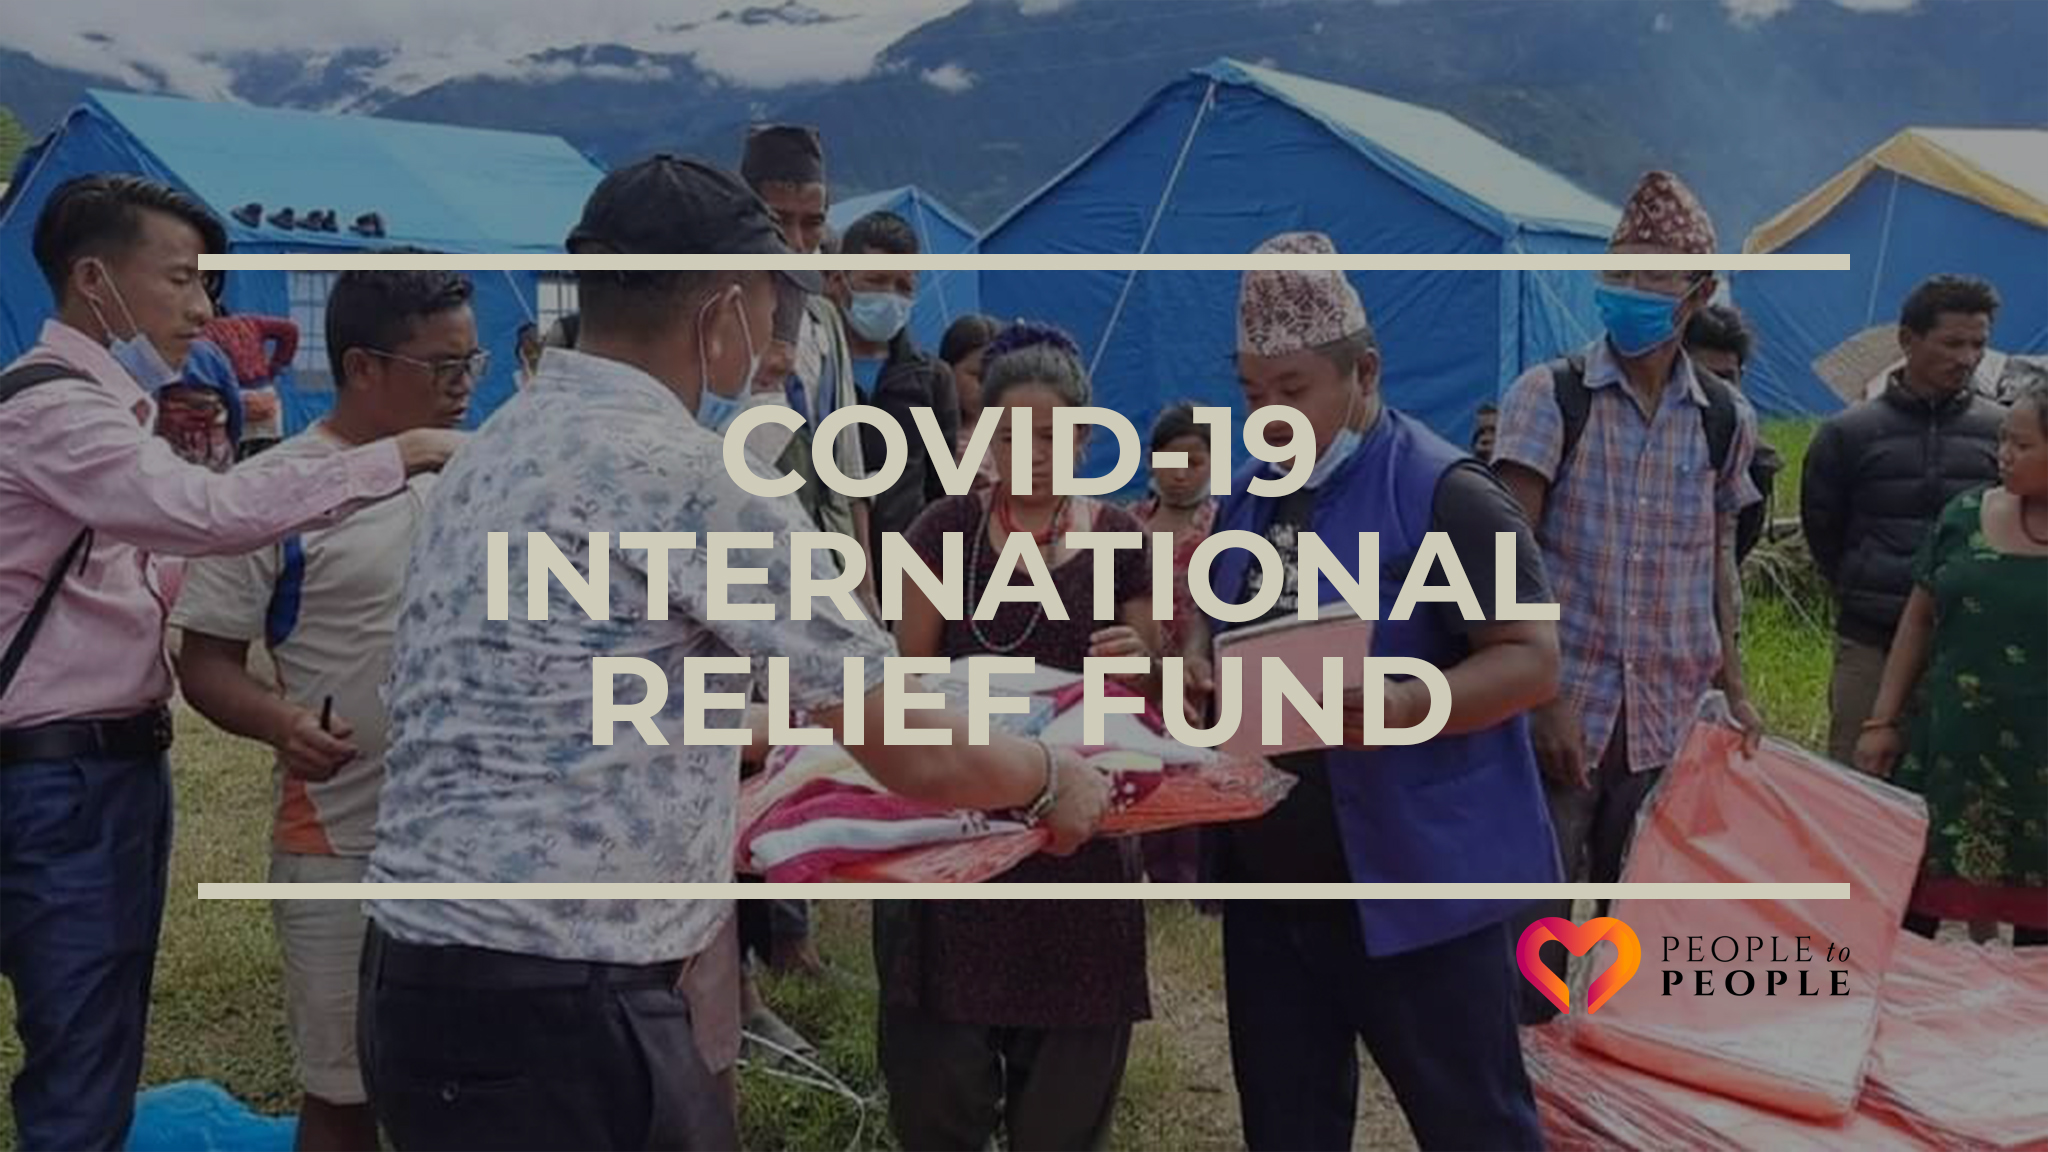 Link to International Pentecostal Holiness Church's International Relief Fund for COVID-19